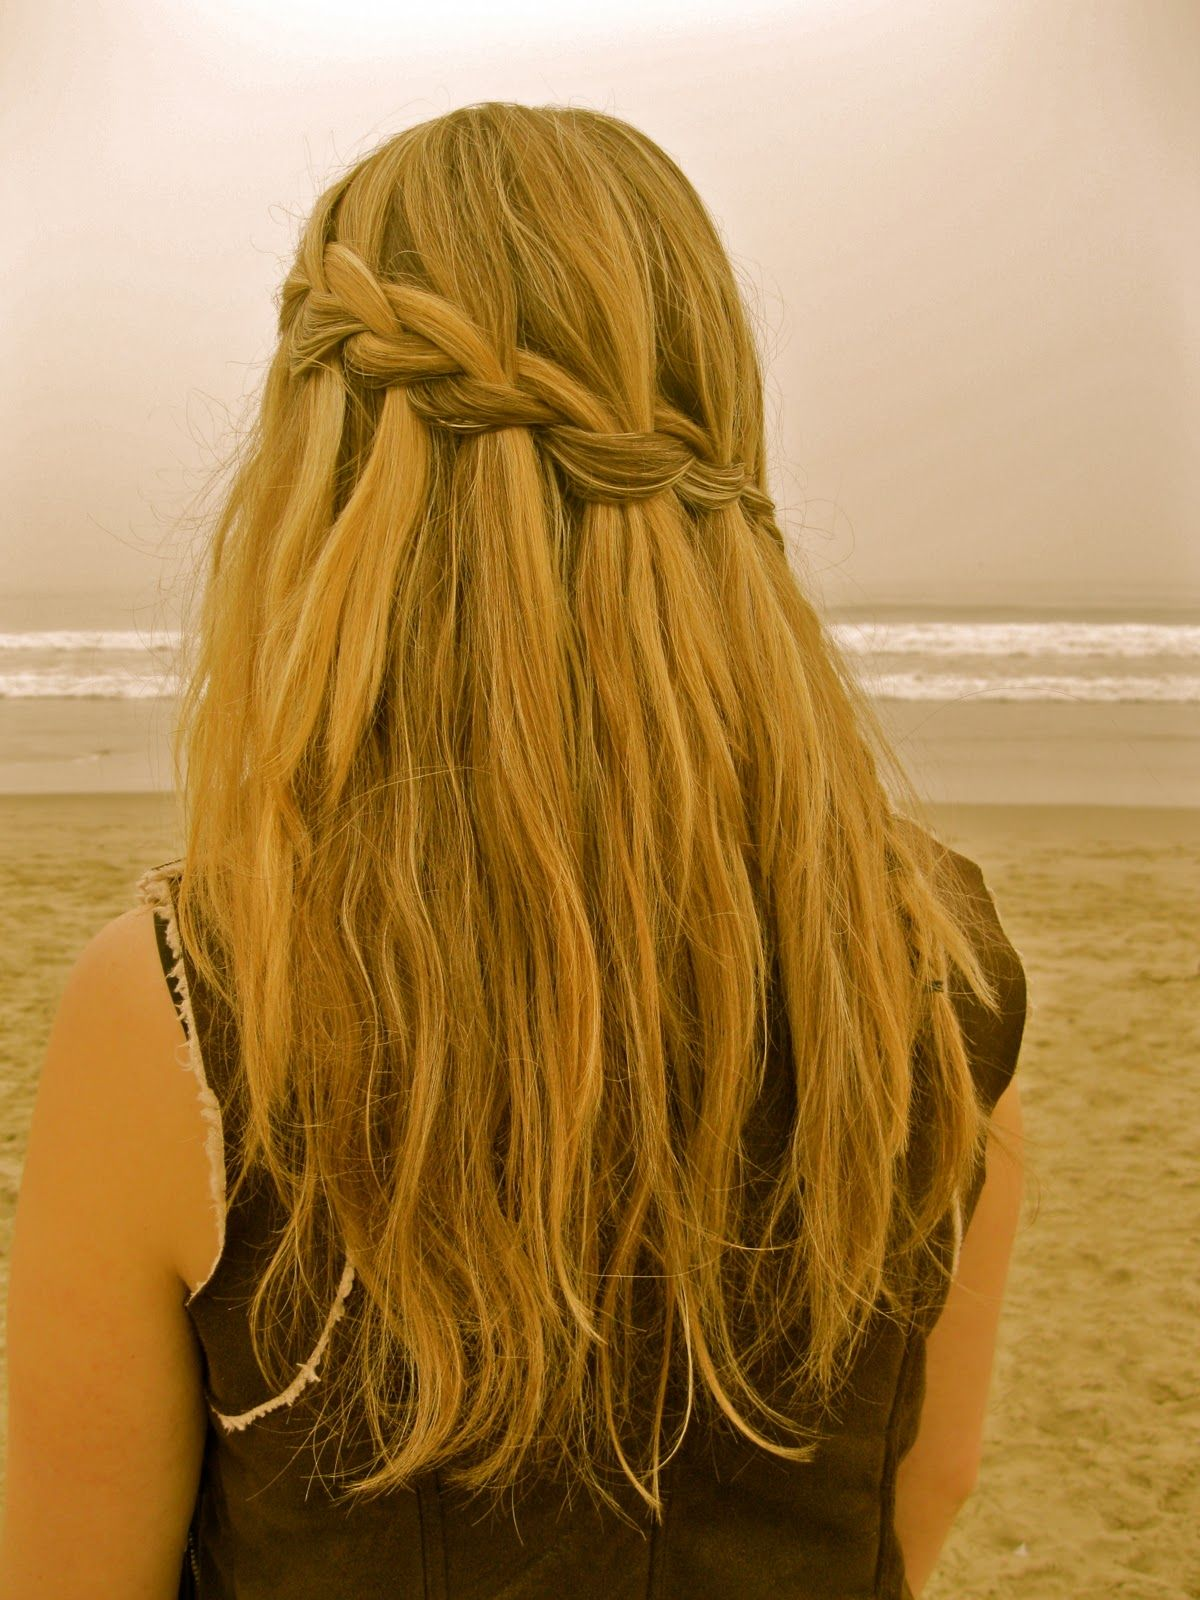 203 casual hairstyles for long hair  casual hairstyles